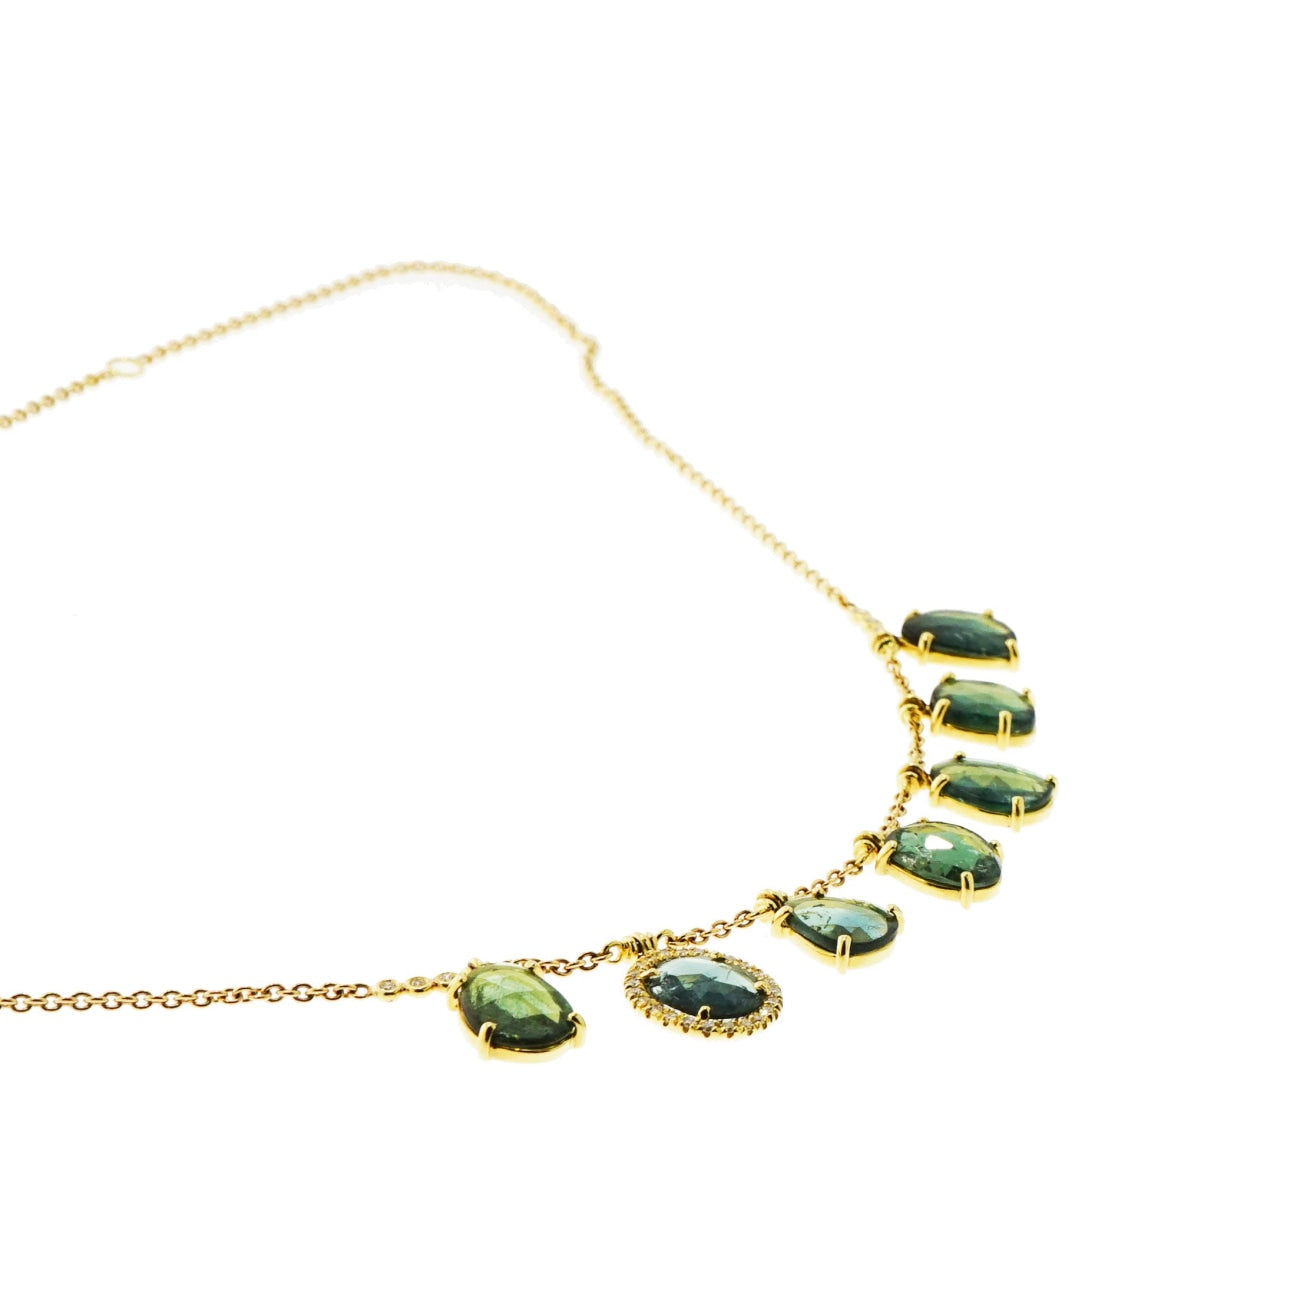 Lauren K Jewelry - Fringe Tourmaline Yellow Gold Necklace | Manfredi Jewels